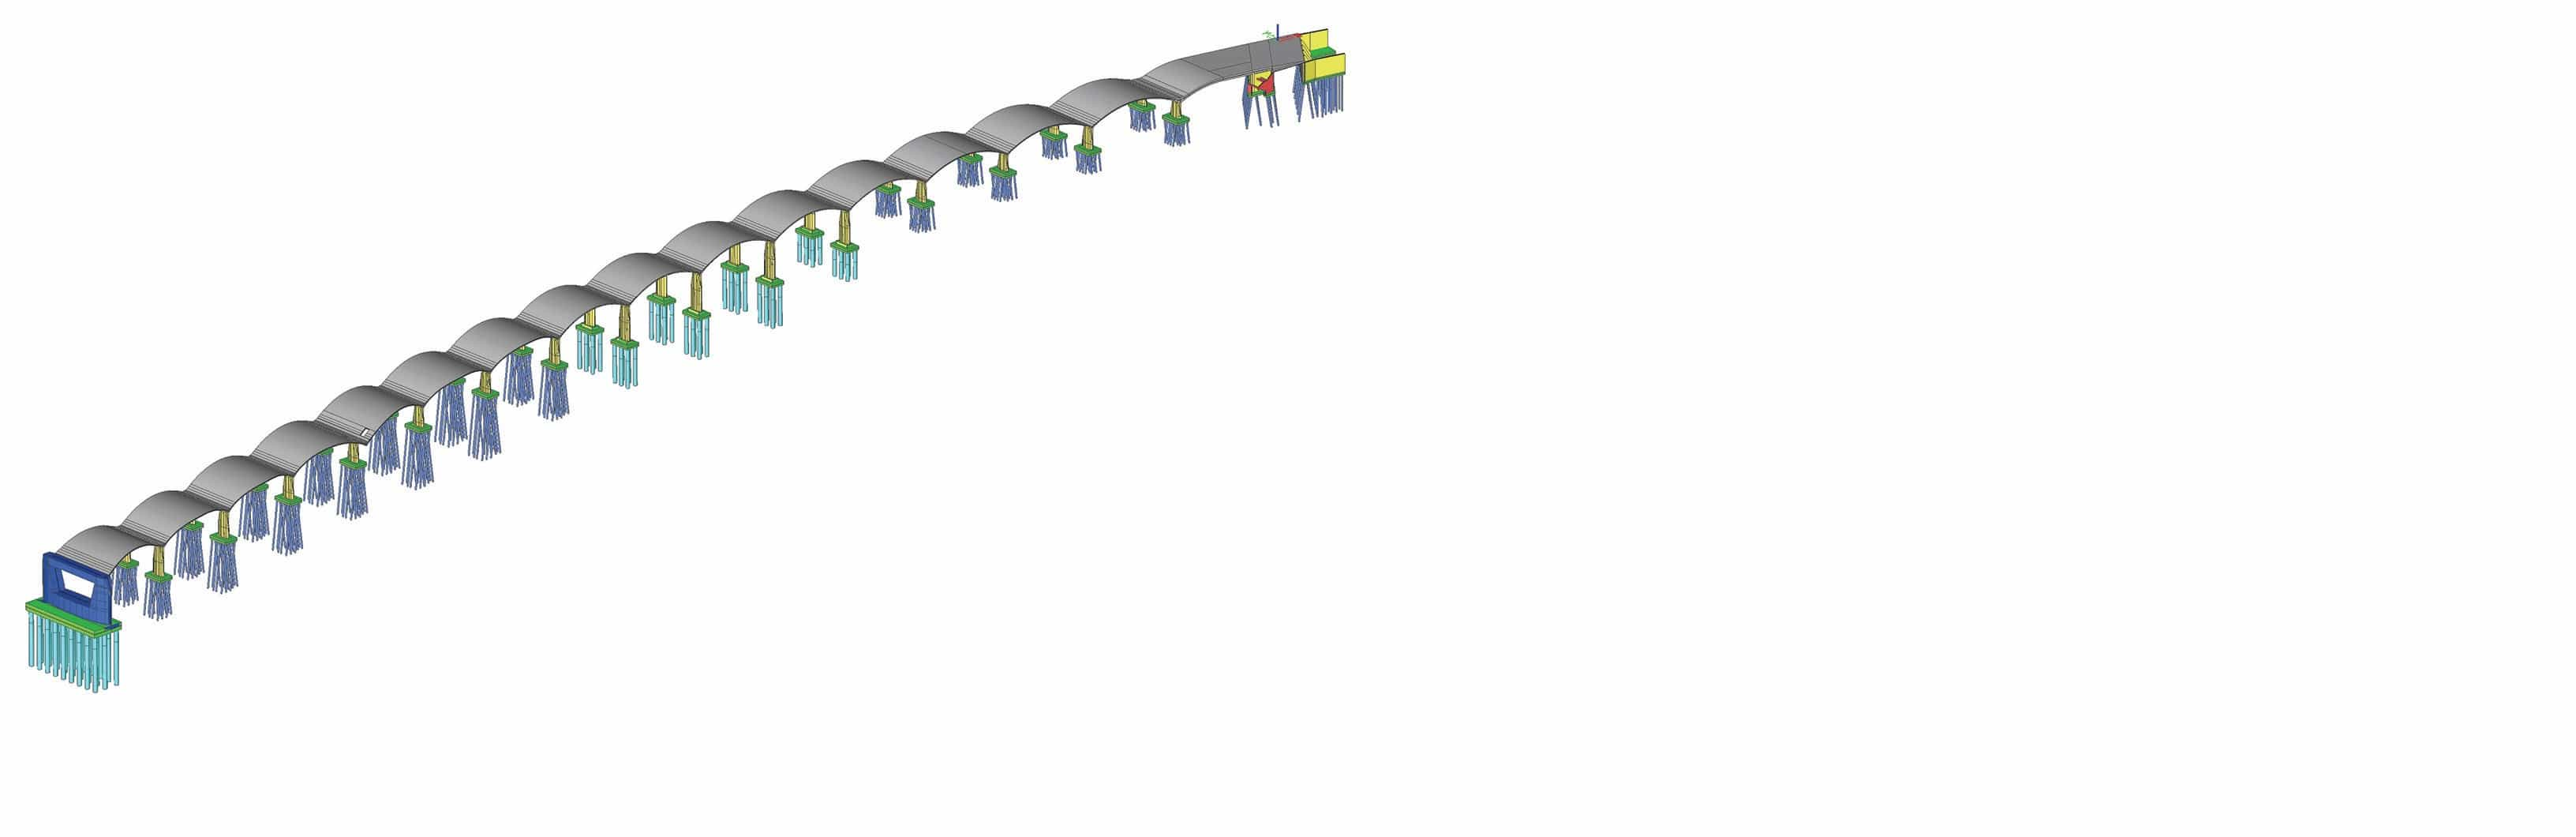 Concrete Arches Modelled in Software